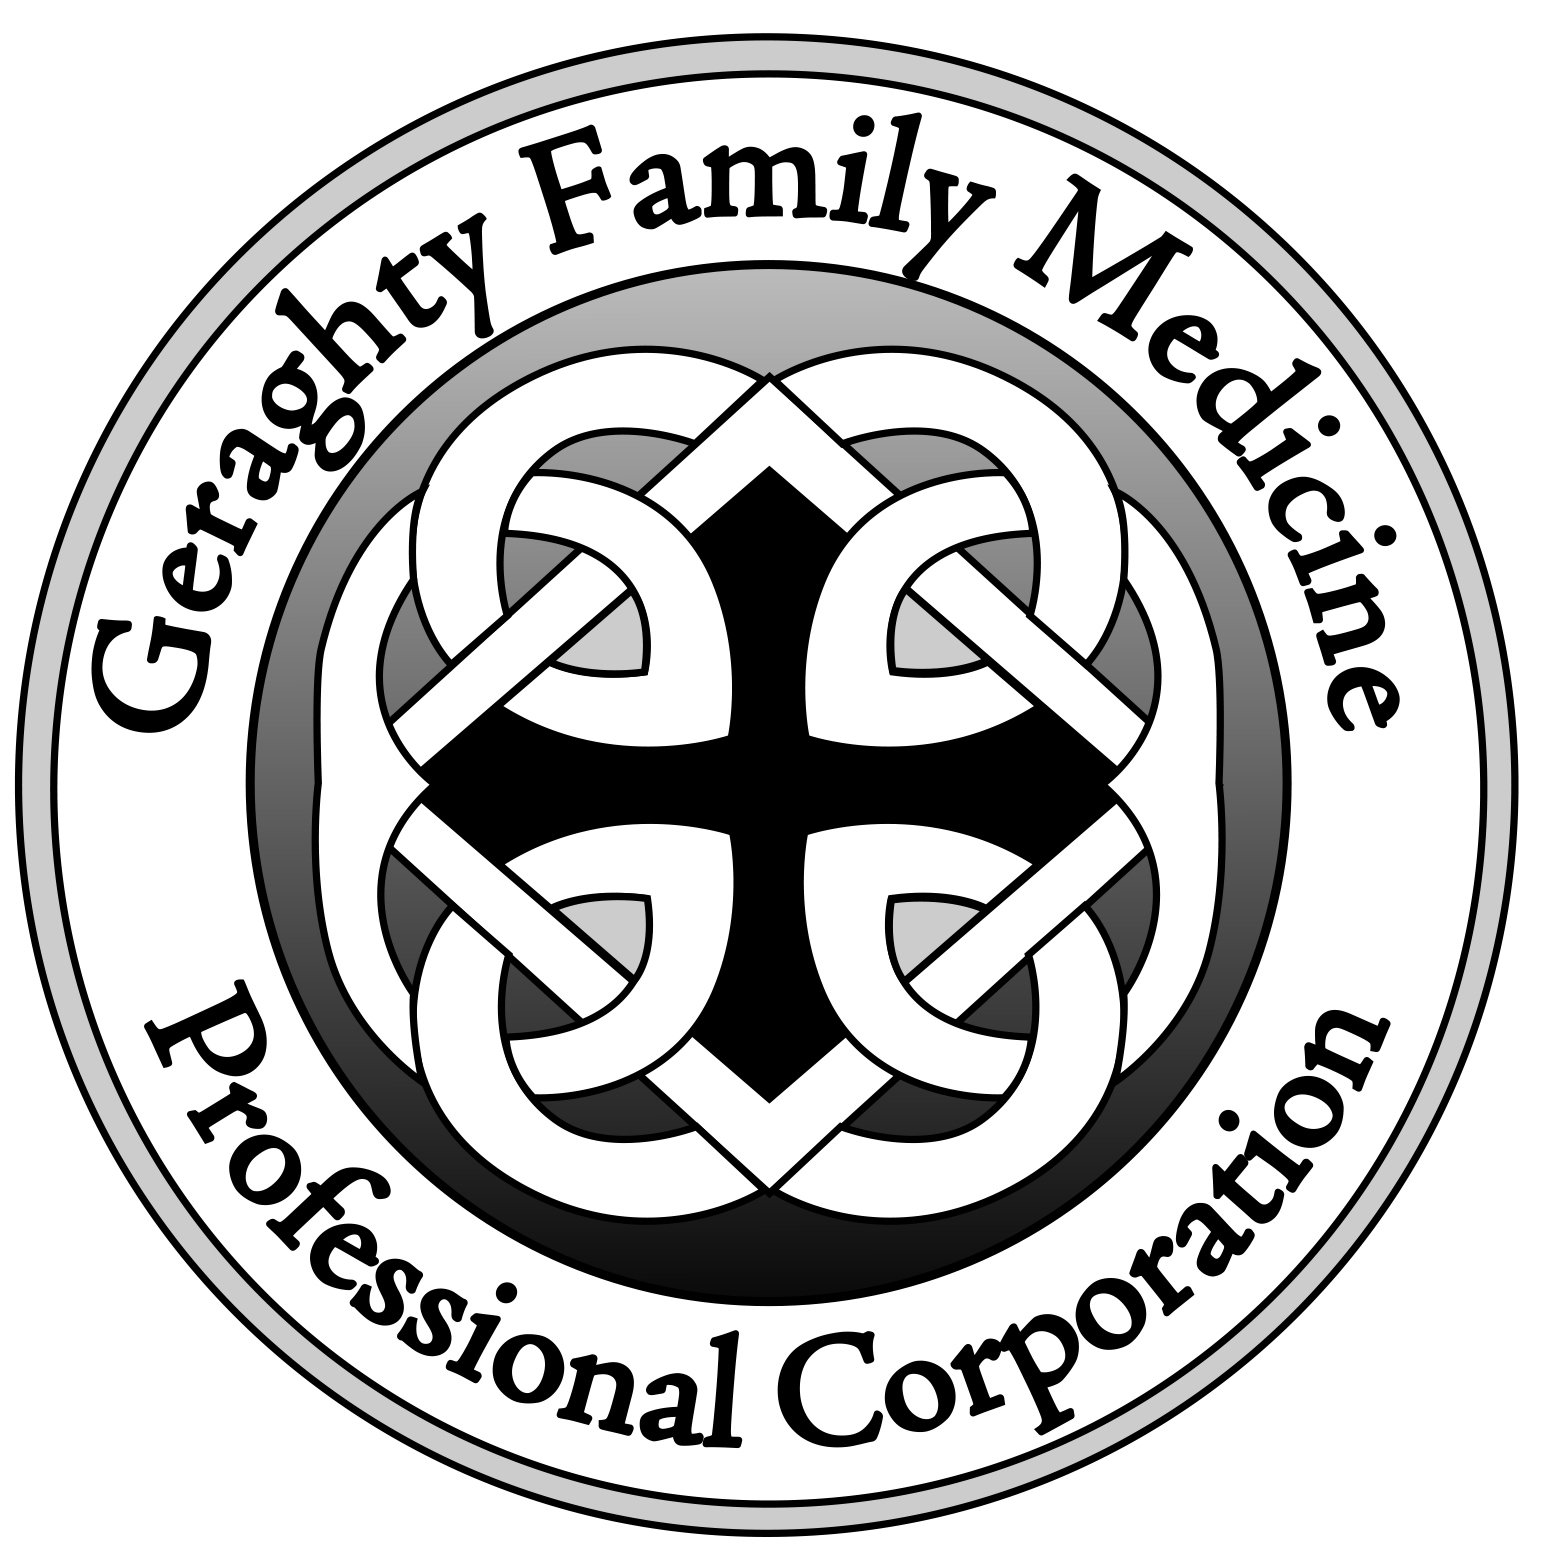 Geraghty Family Medicine 2014 Invisible Disabilities Association Sponsor